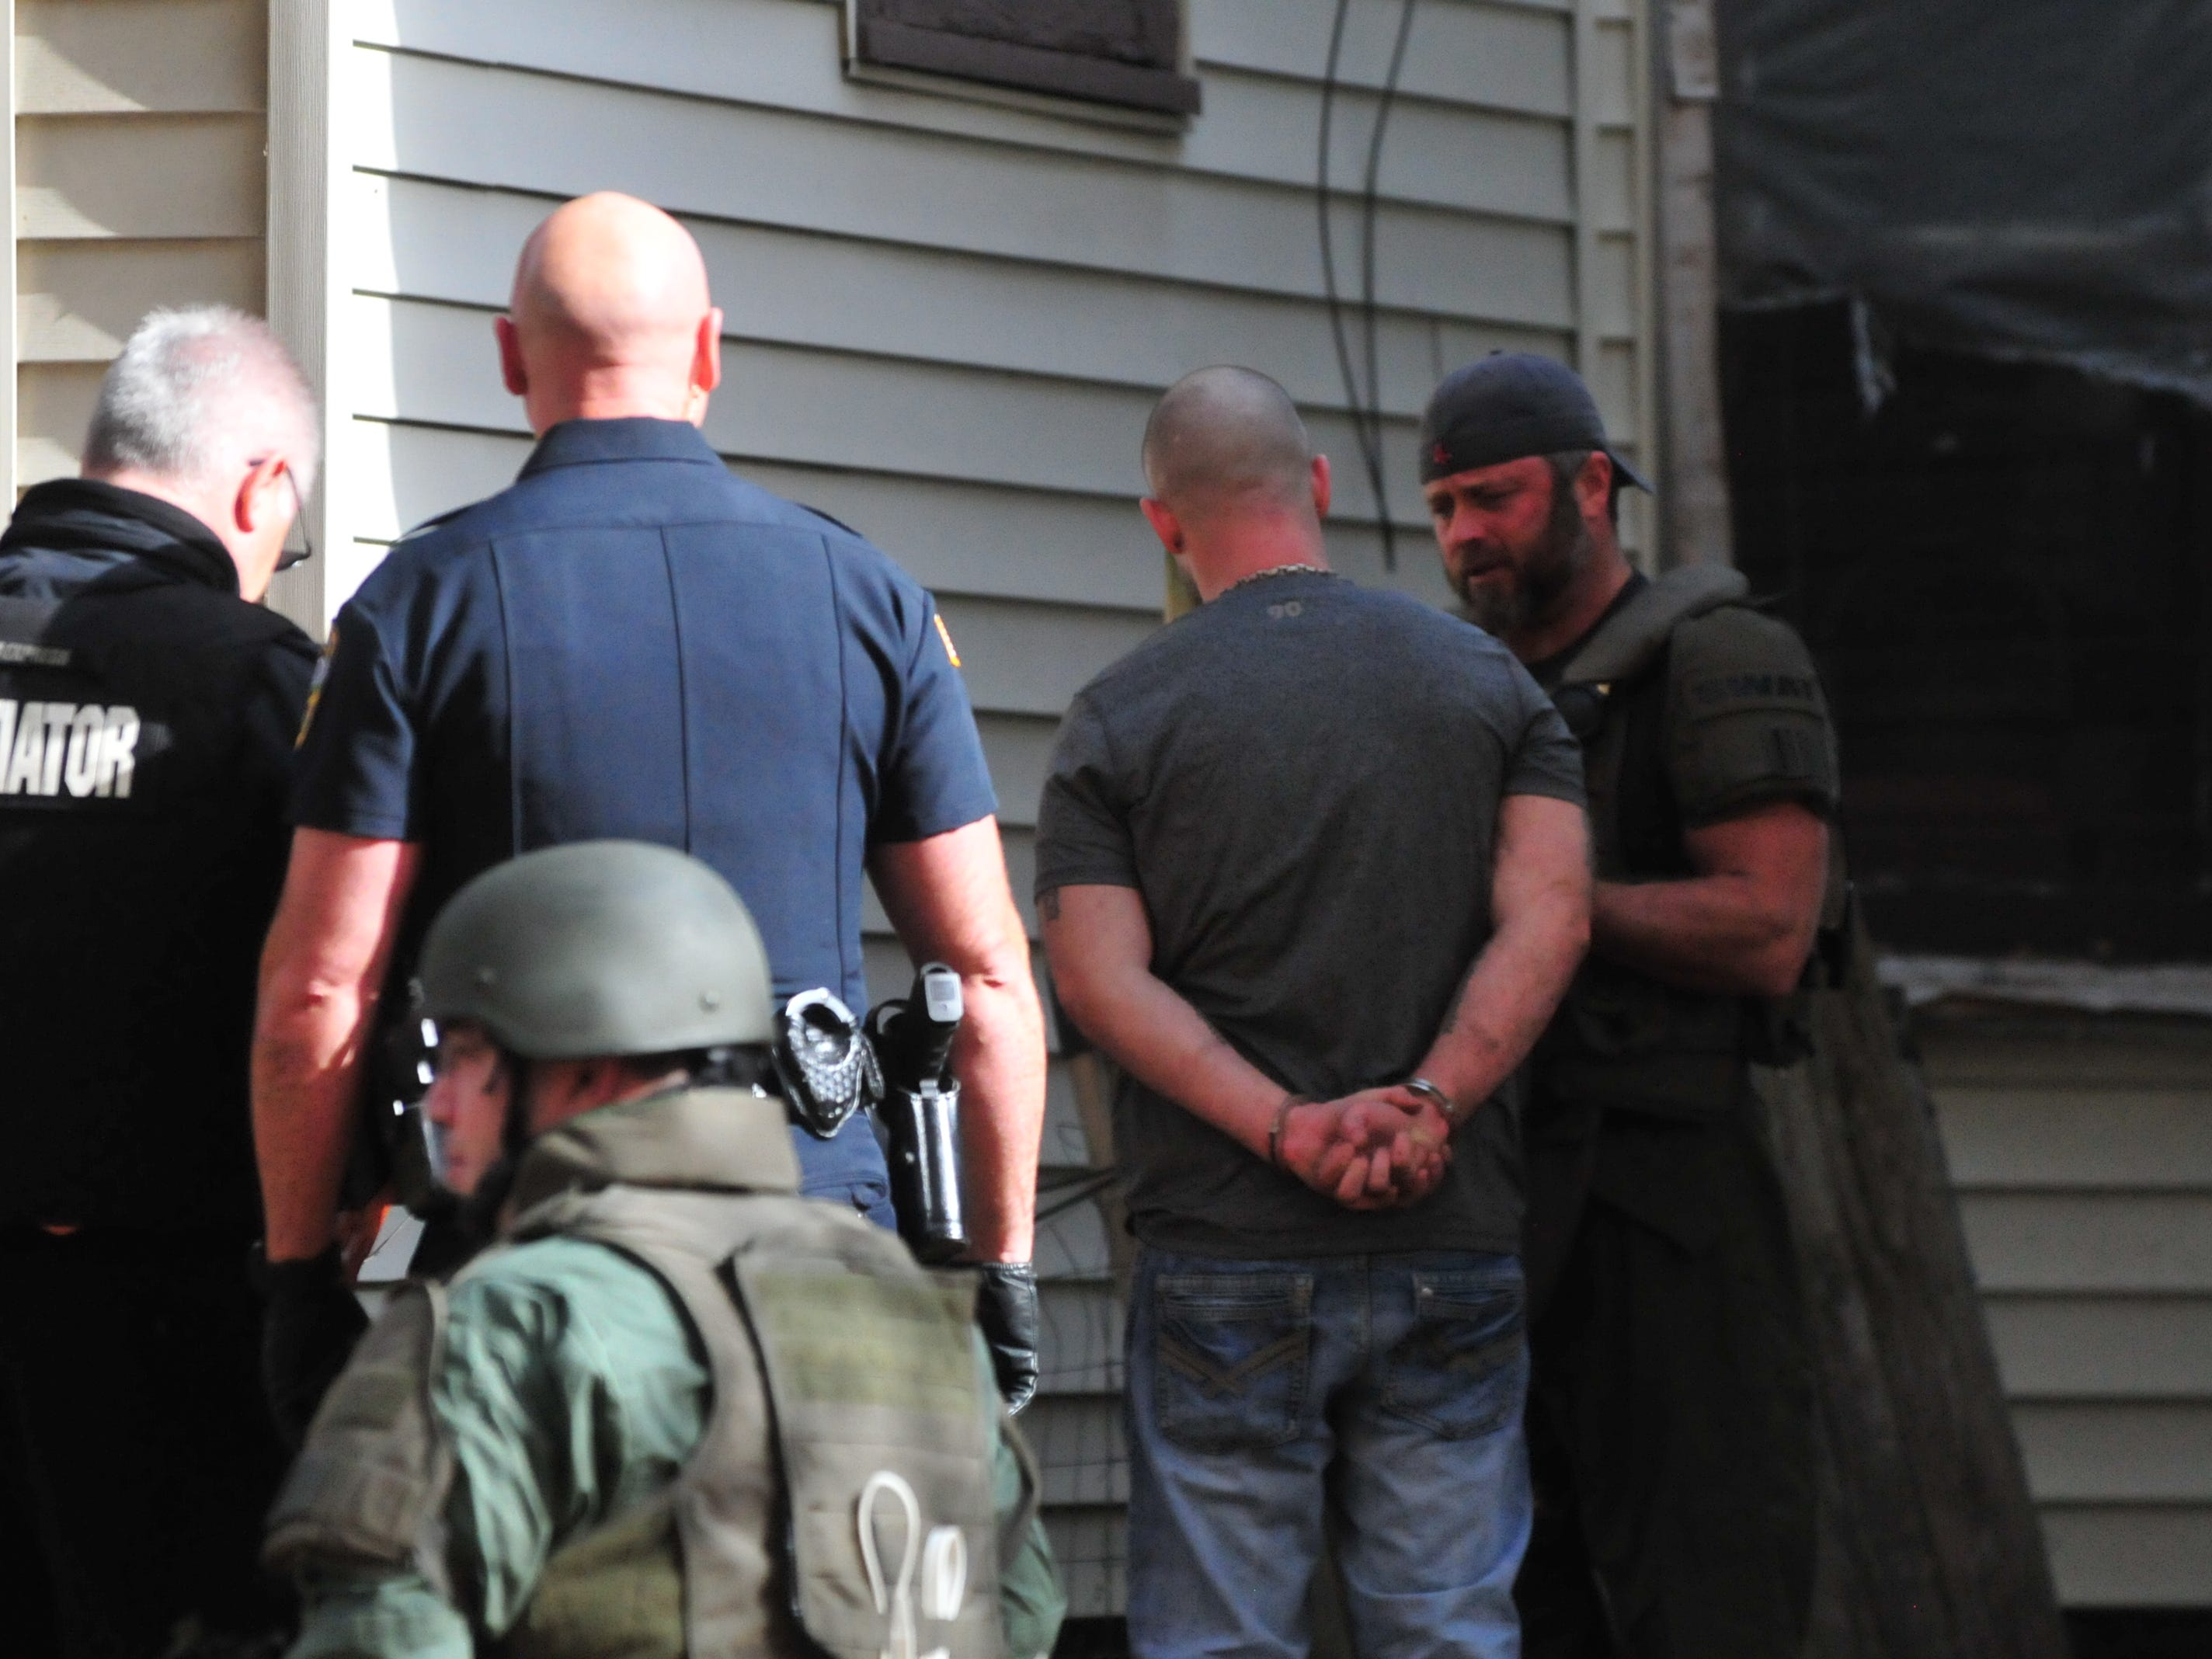 Lt. Scott Crull speaks with Corey Groce after a SWAT raid Monday on North 16th Street.